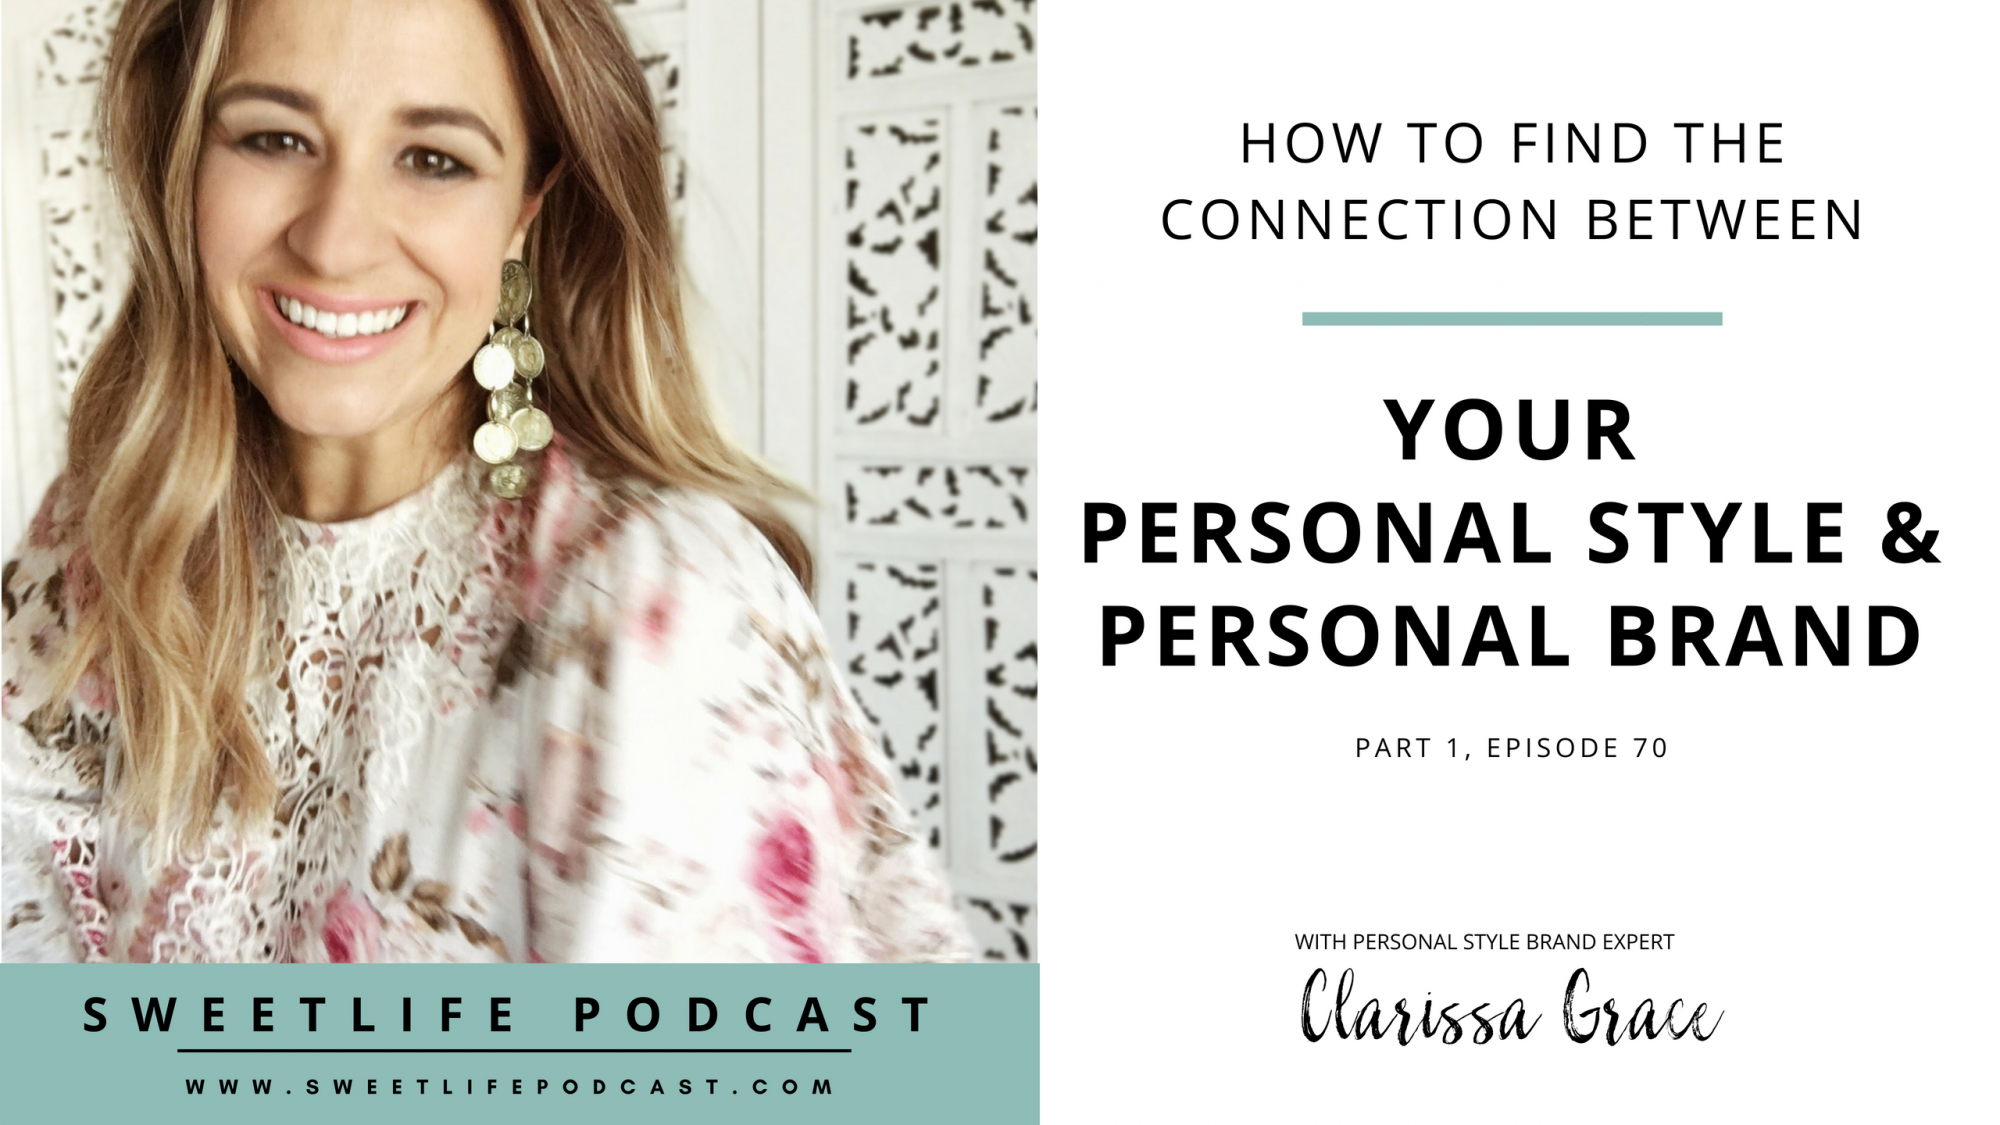 Episode 70: Part 1: How to Find the Connection Between Your Personal Style & Brand – Intro with Clarissa Grace